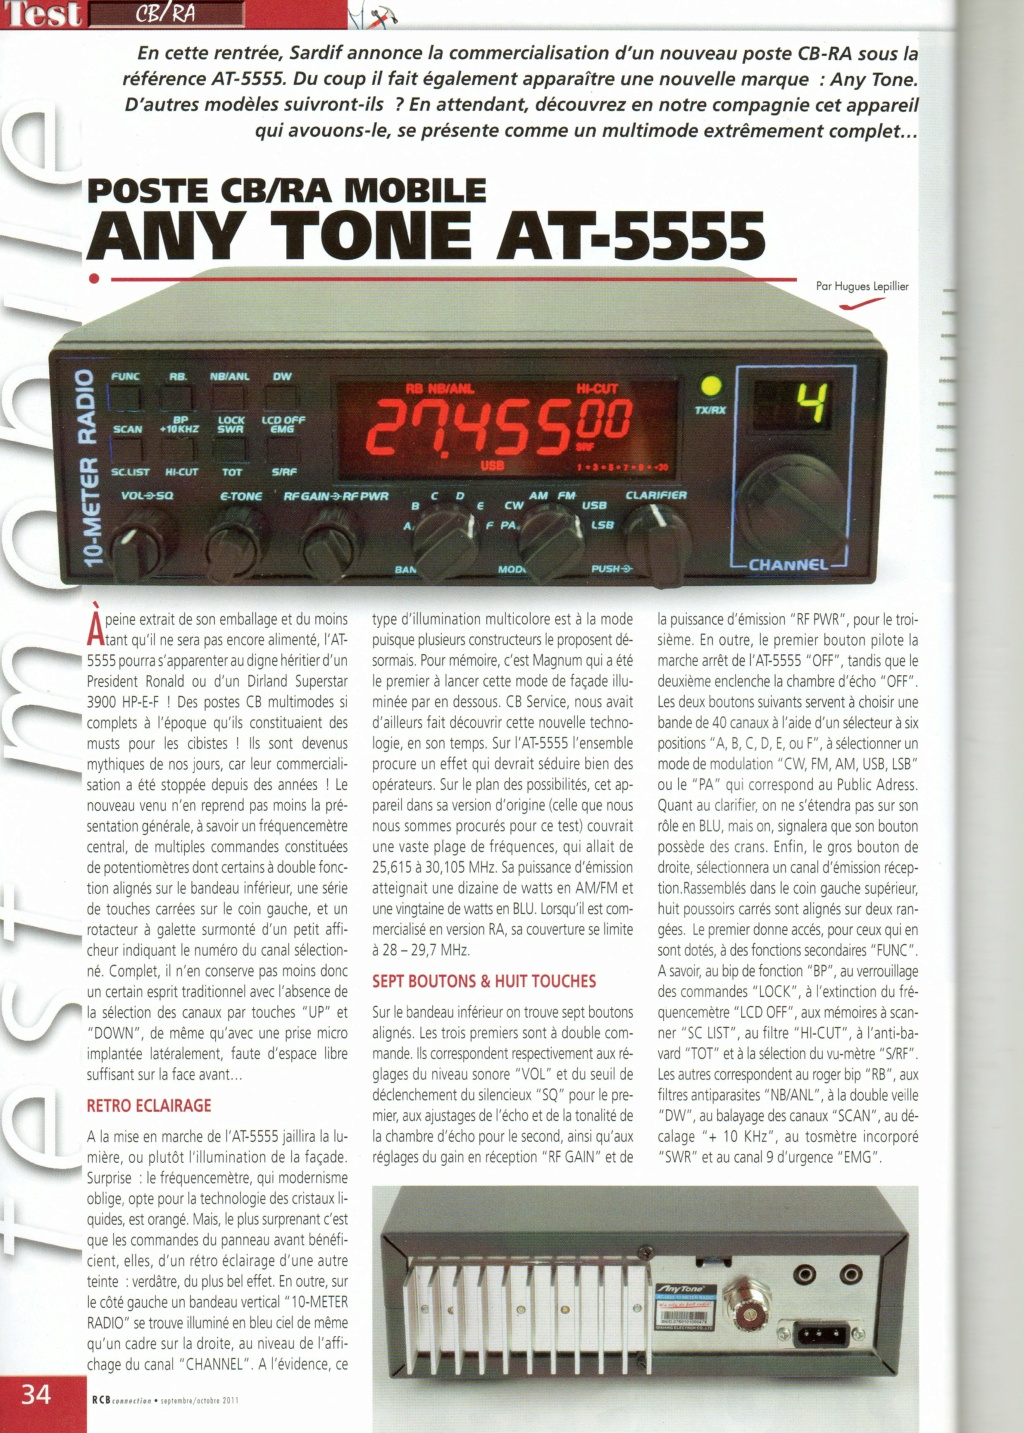 Anytone AT-5555 (Mobile) Img48810